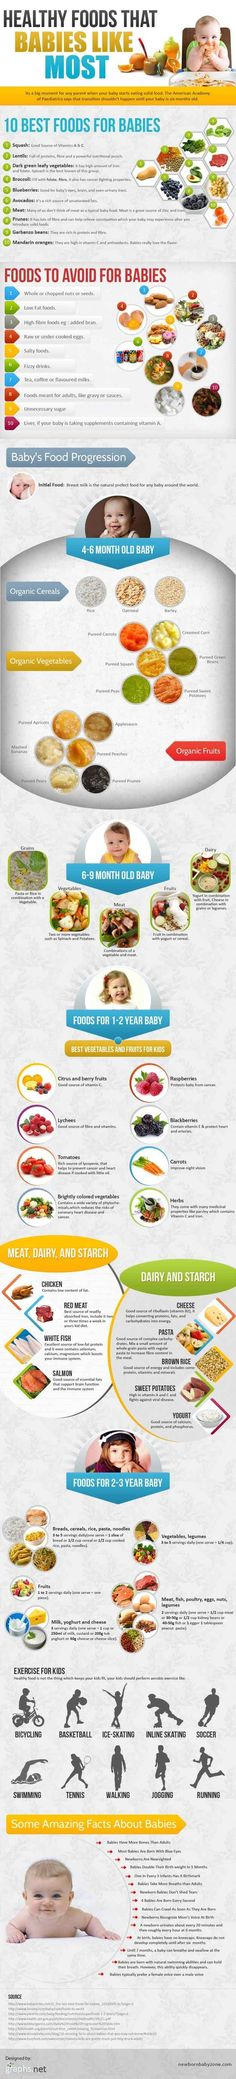 Make sure you're feeding your baby the right foods: